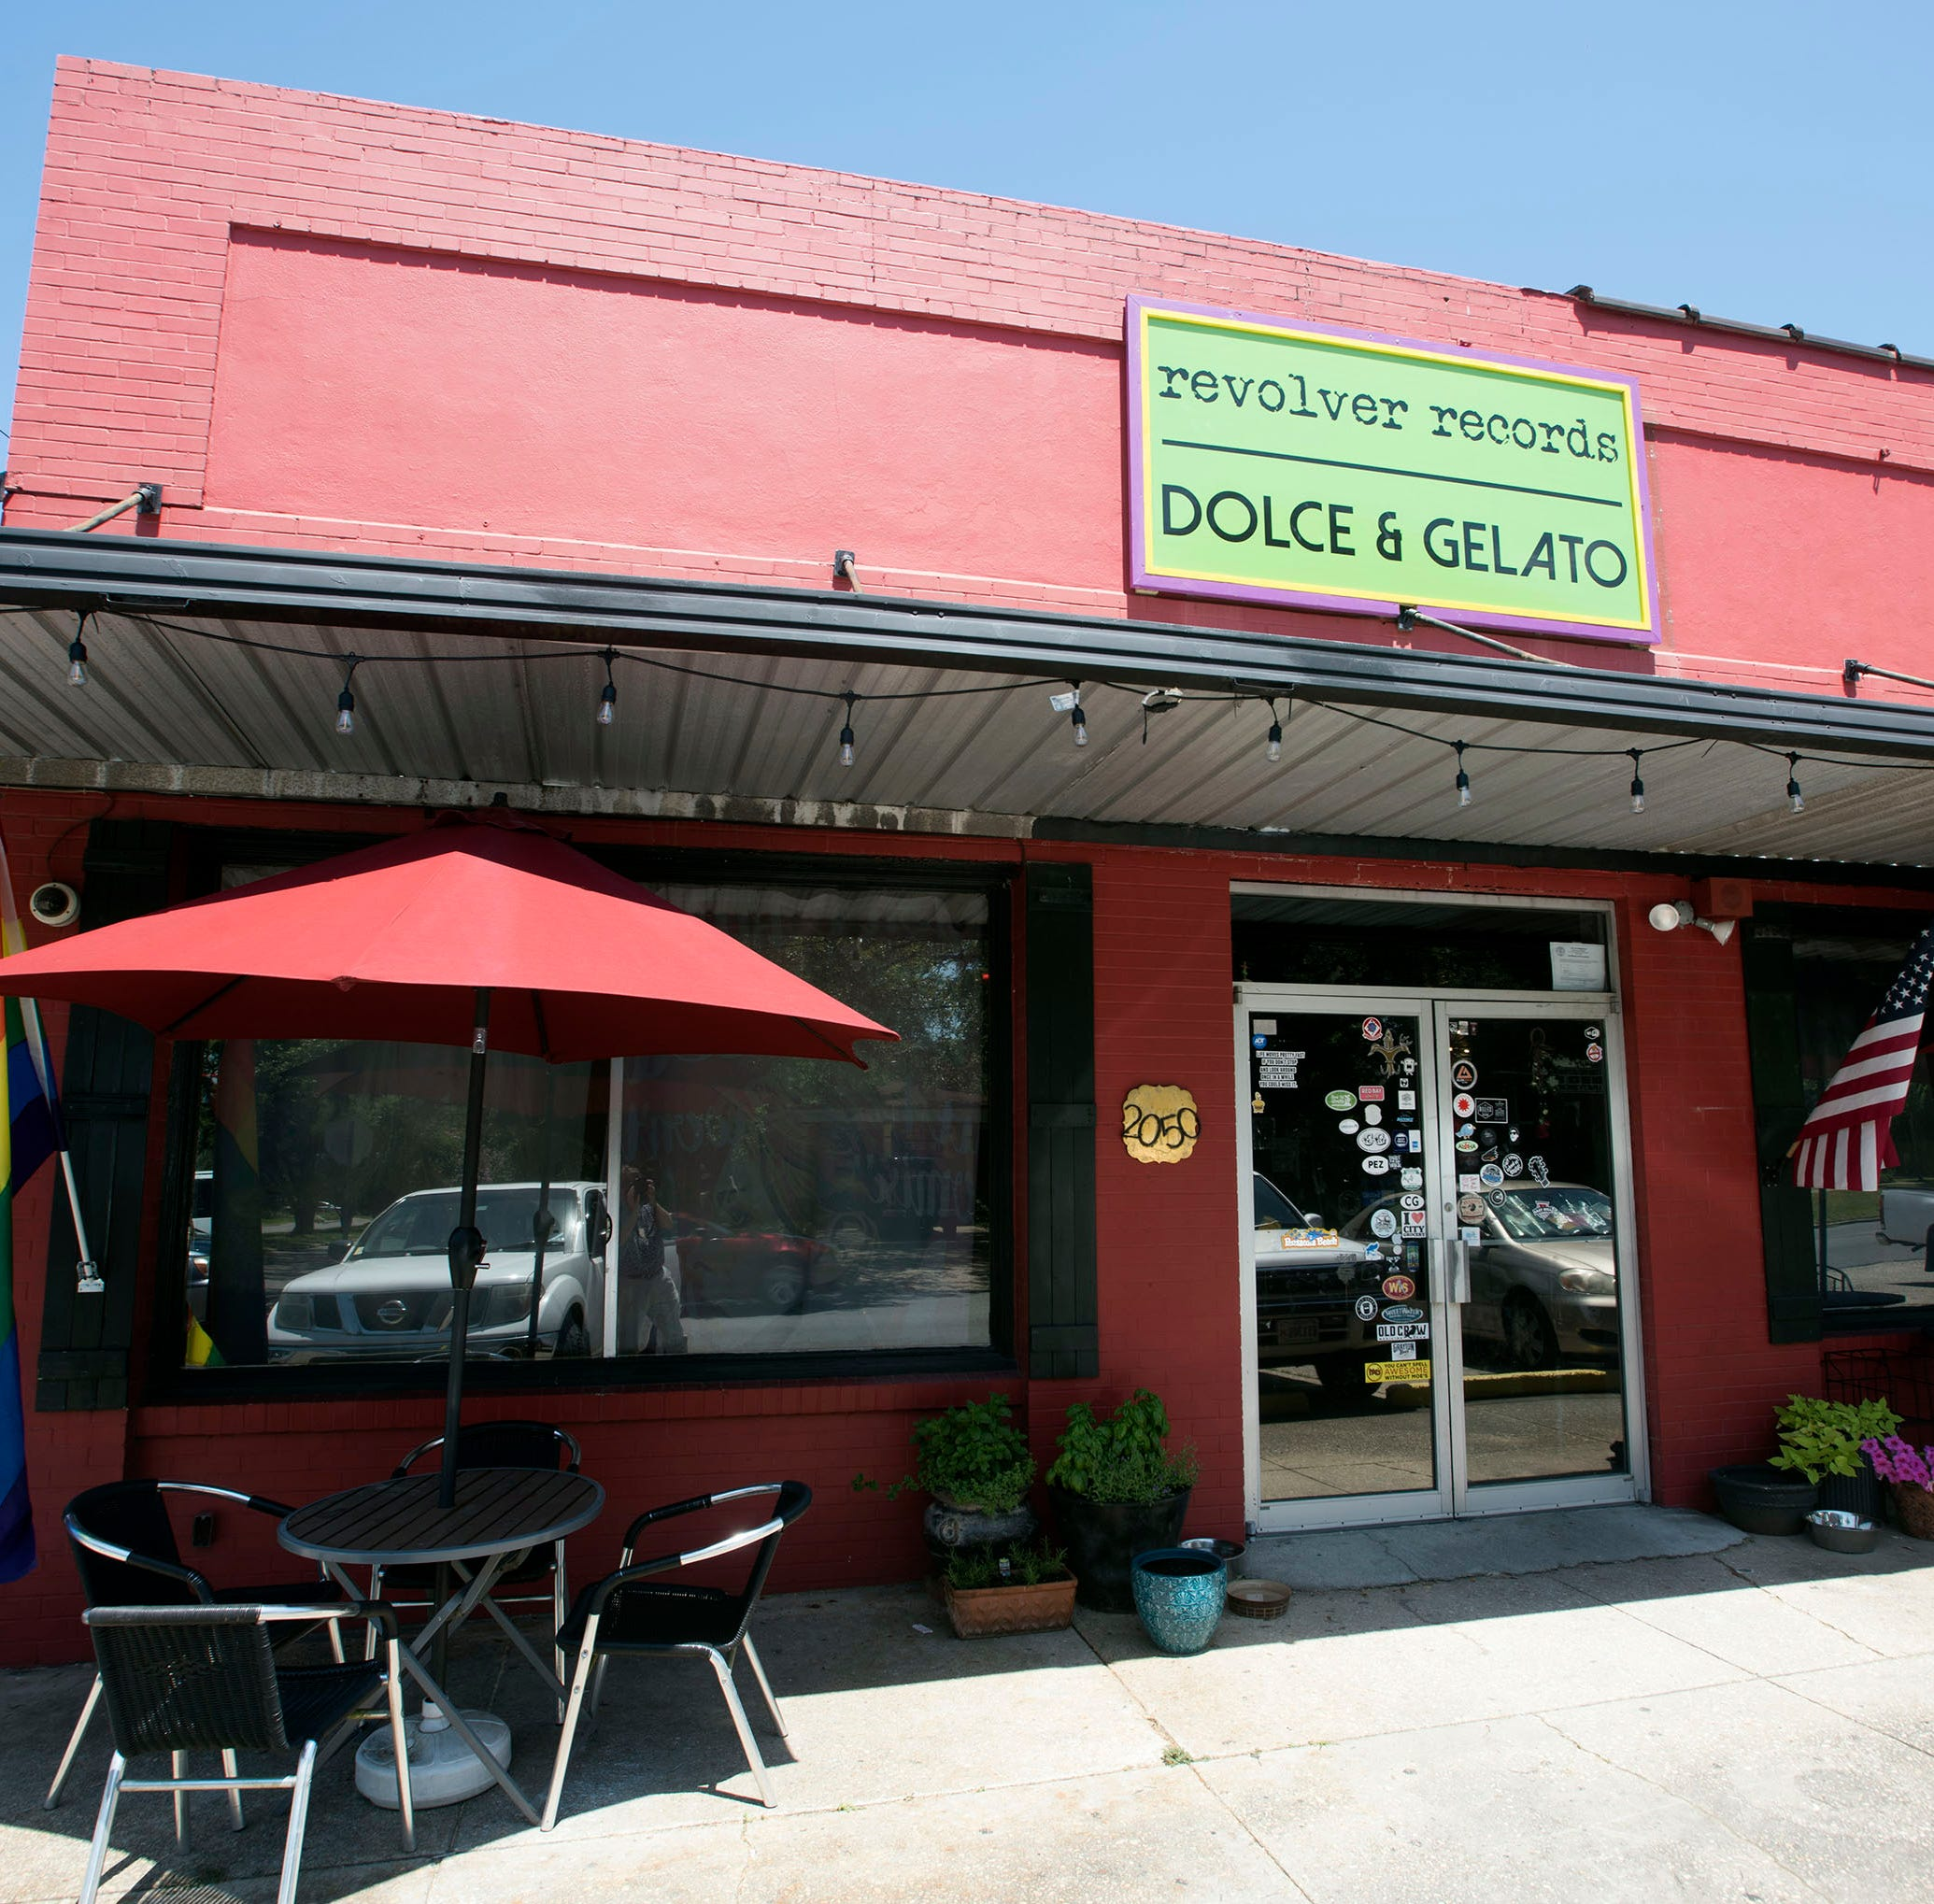 Sweets and beats: Dolce & Gelato, Revolver Records join forces in old City Grocery building